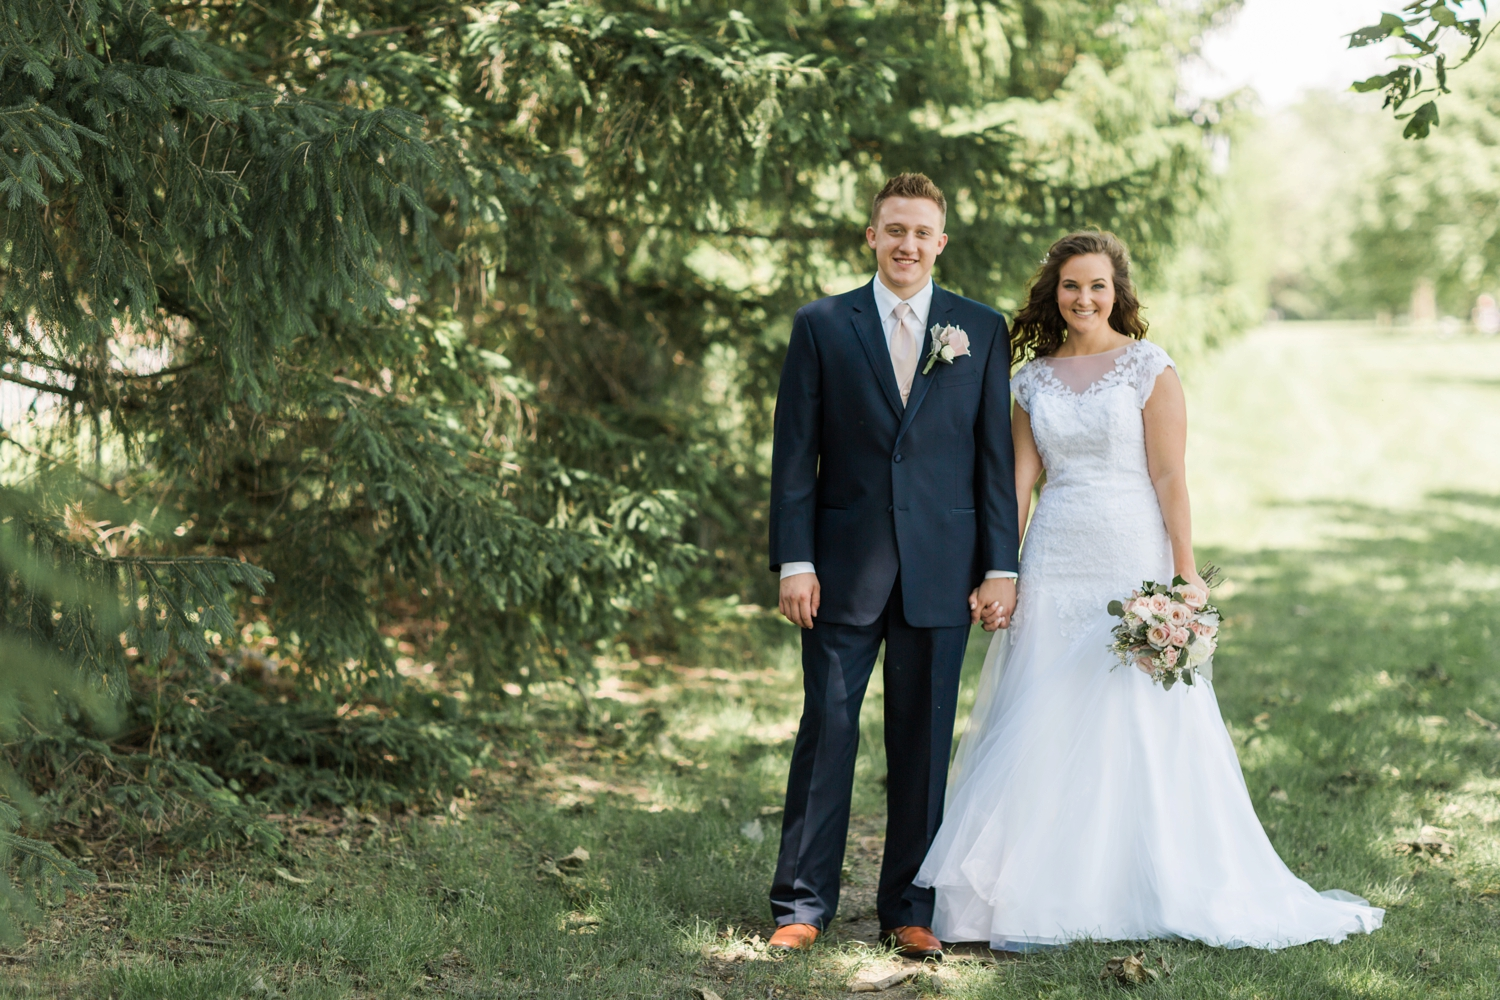 Community_Life_Center_Indianapolis_Indiana_Wedding_Photographer_Chloe_Luka_Photography_6896.jpg